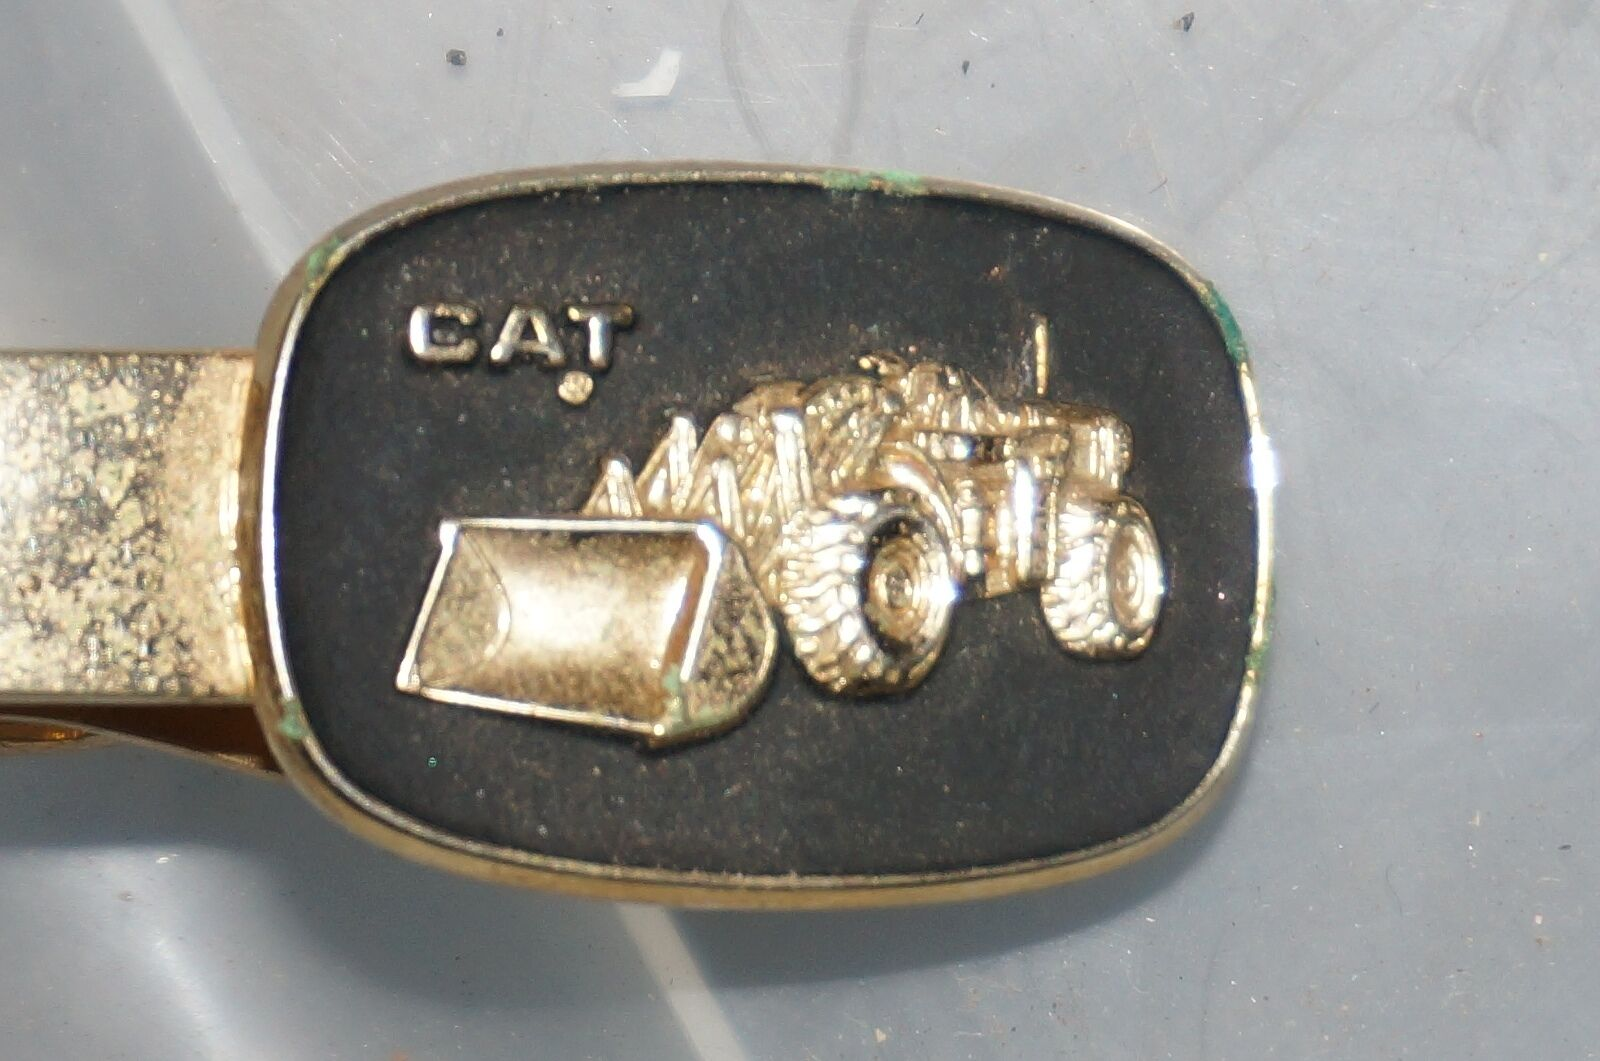 Caterpillar Cat Tie Clip Looks like a 966B